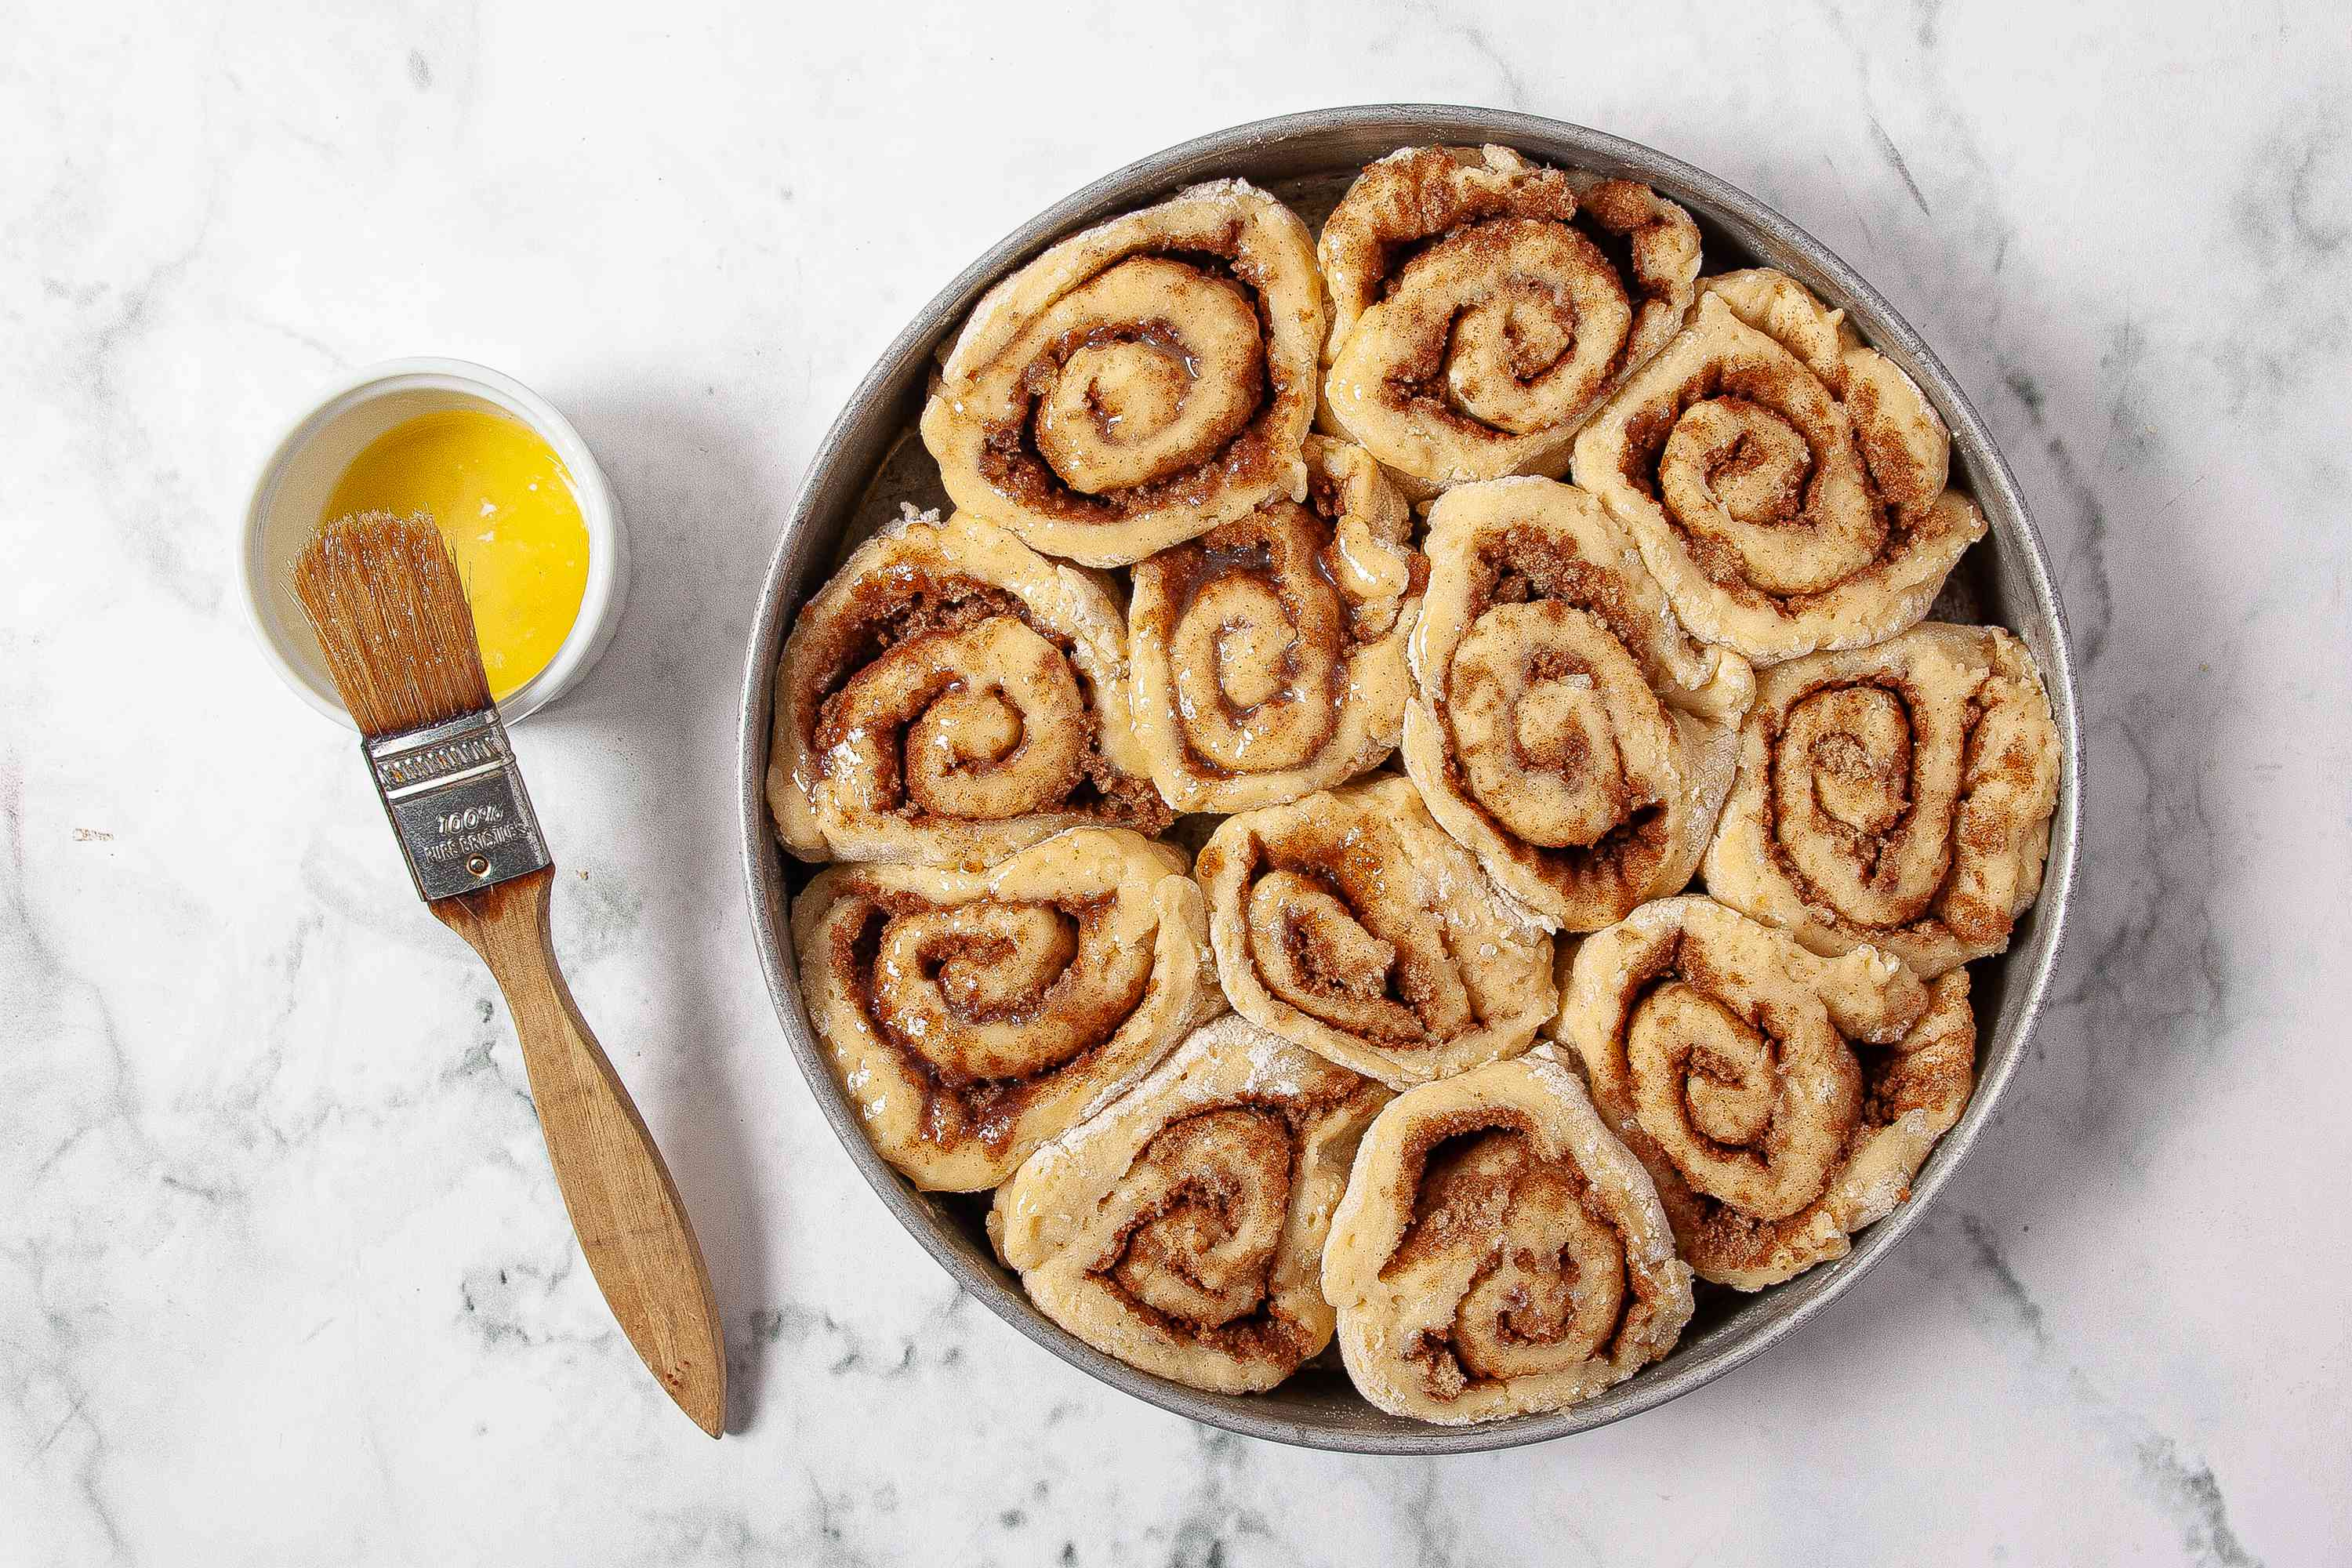 brush tops of cinnamon rolls with butter